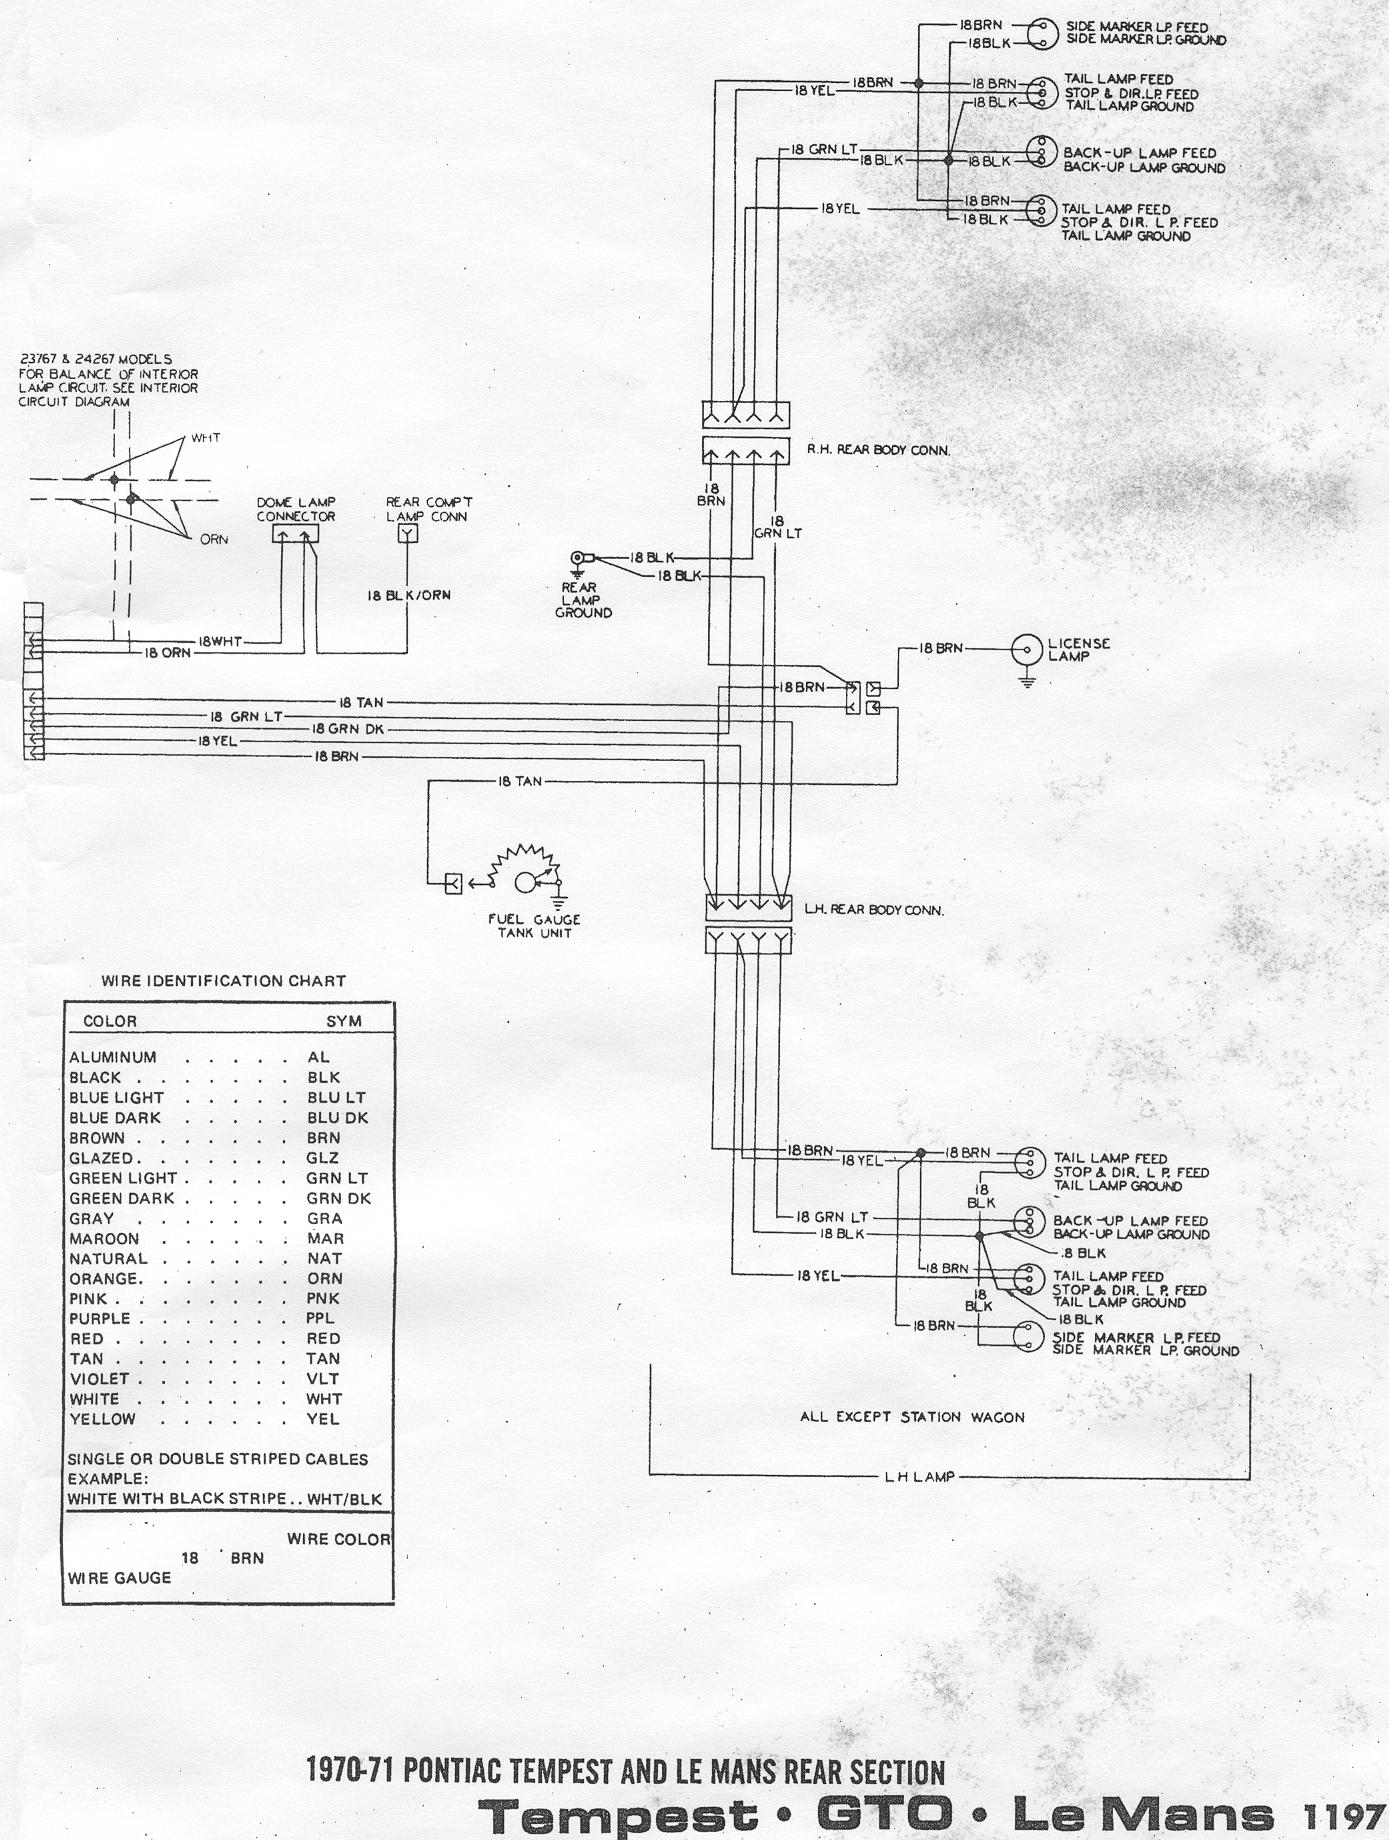 gto wiring diagram scans pontiac gto forum jpg views 63535 size click image for larger version 70 71 gto page2